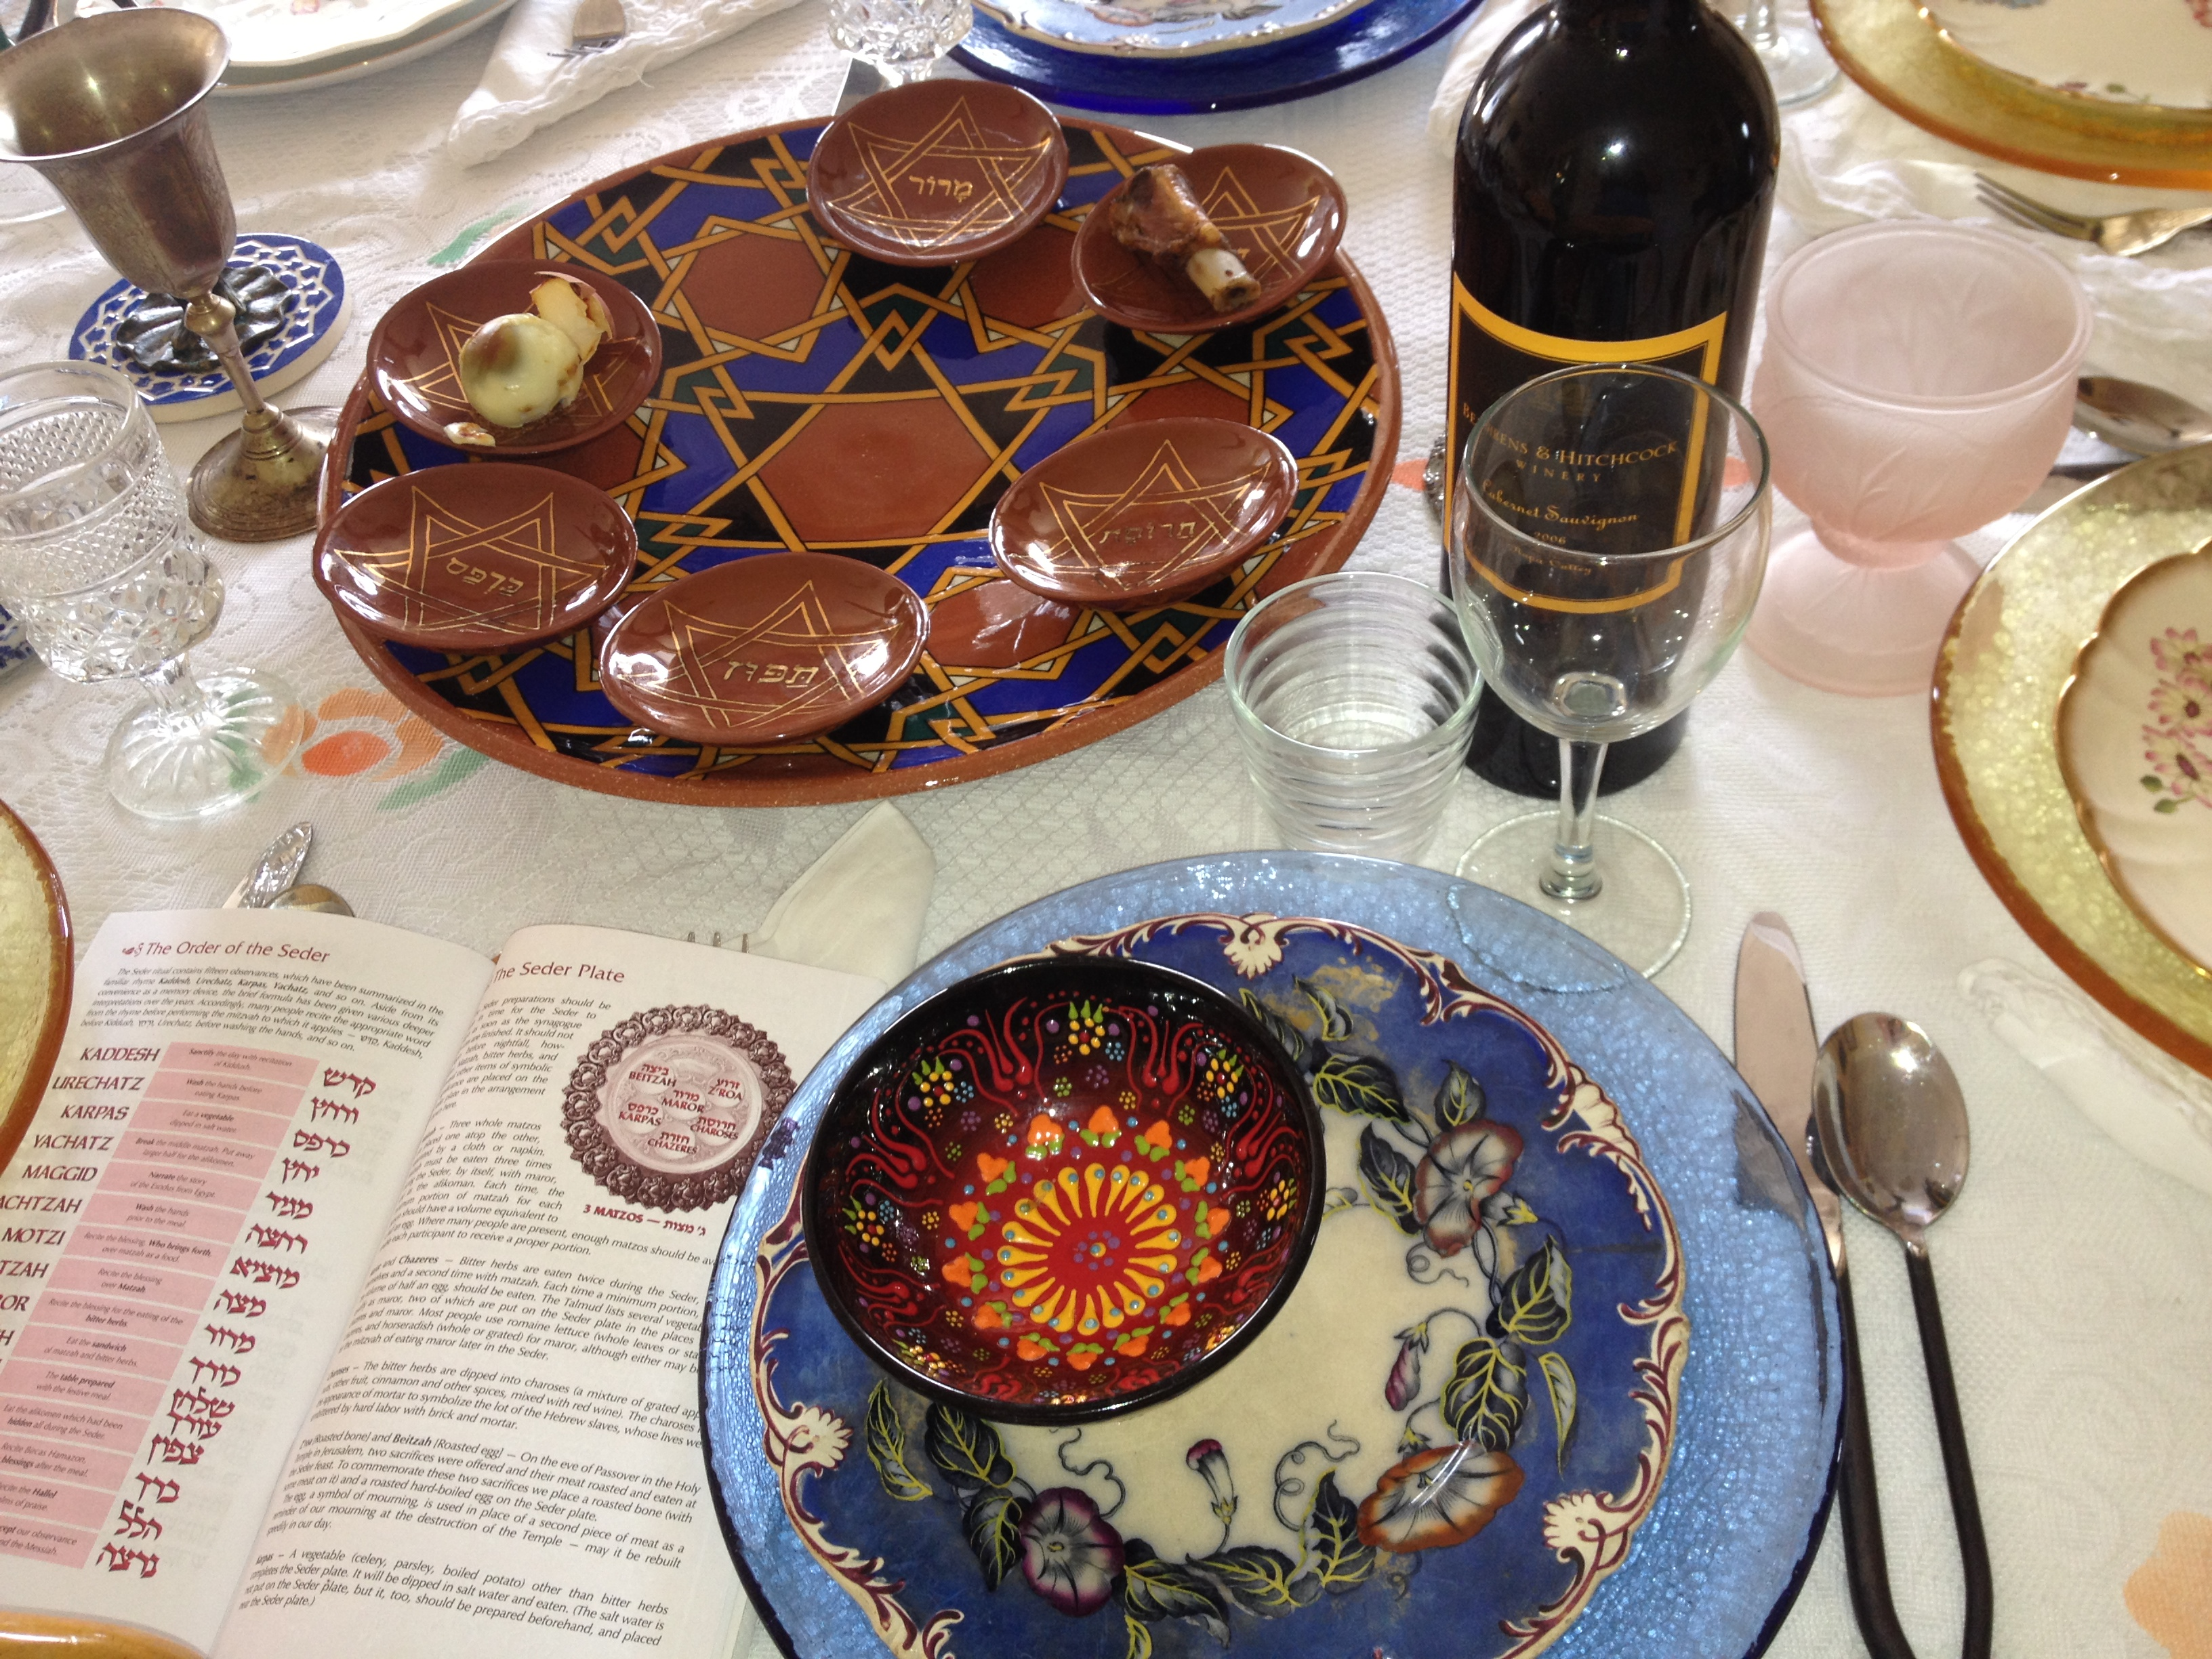 Pesach Table Setting with Seder Plate by Paul Barchilon at my home last year. & Preparing for Passover and setting a place at the table for the ...